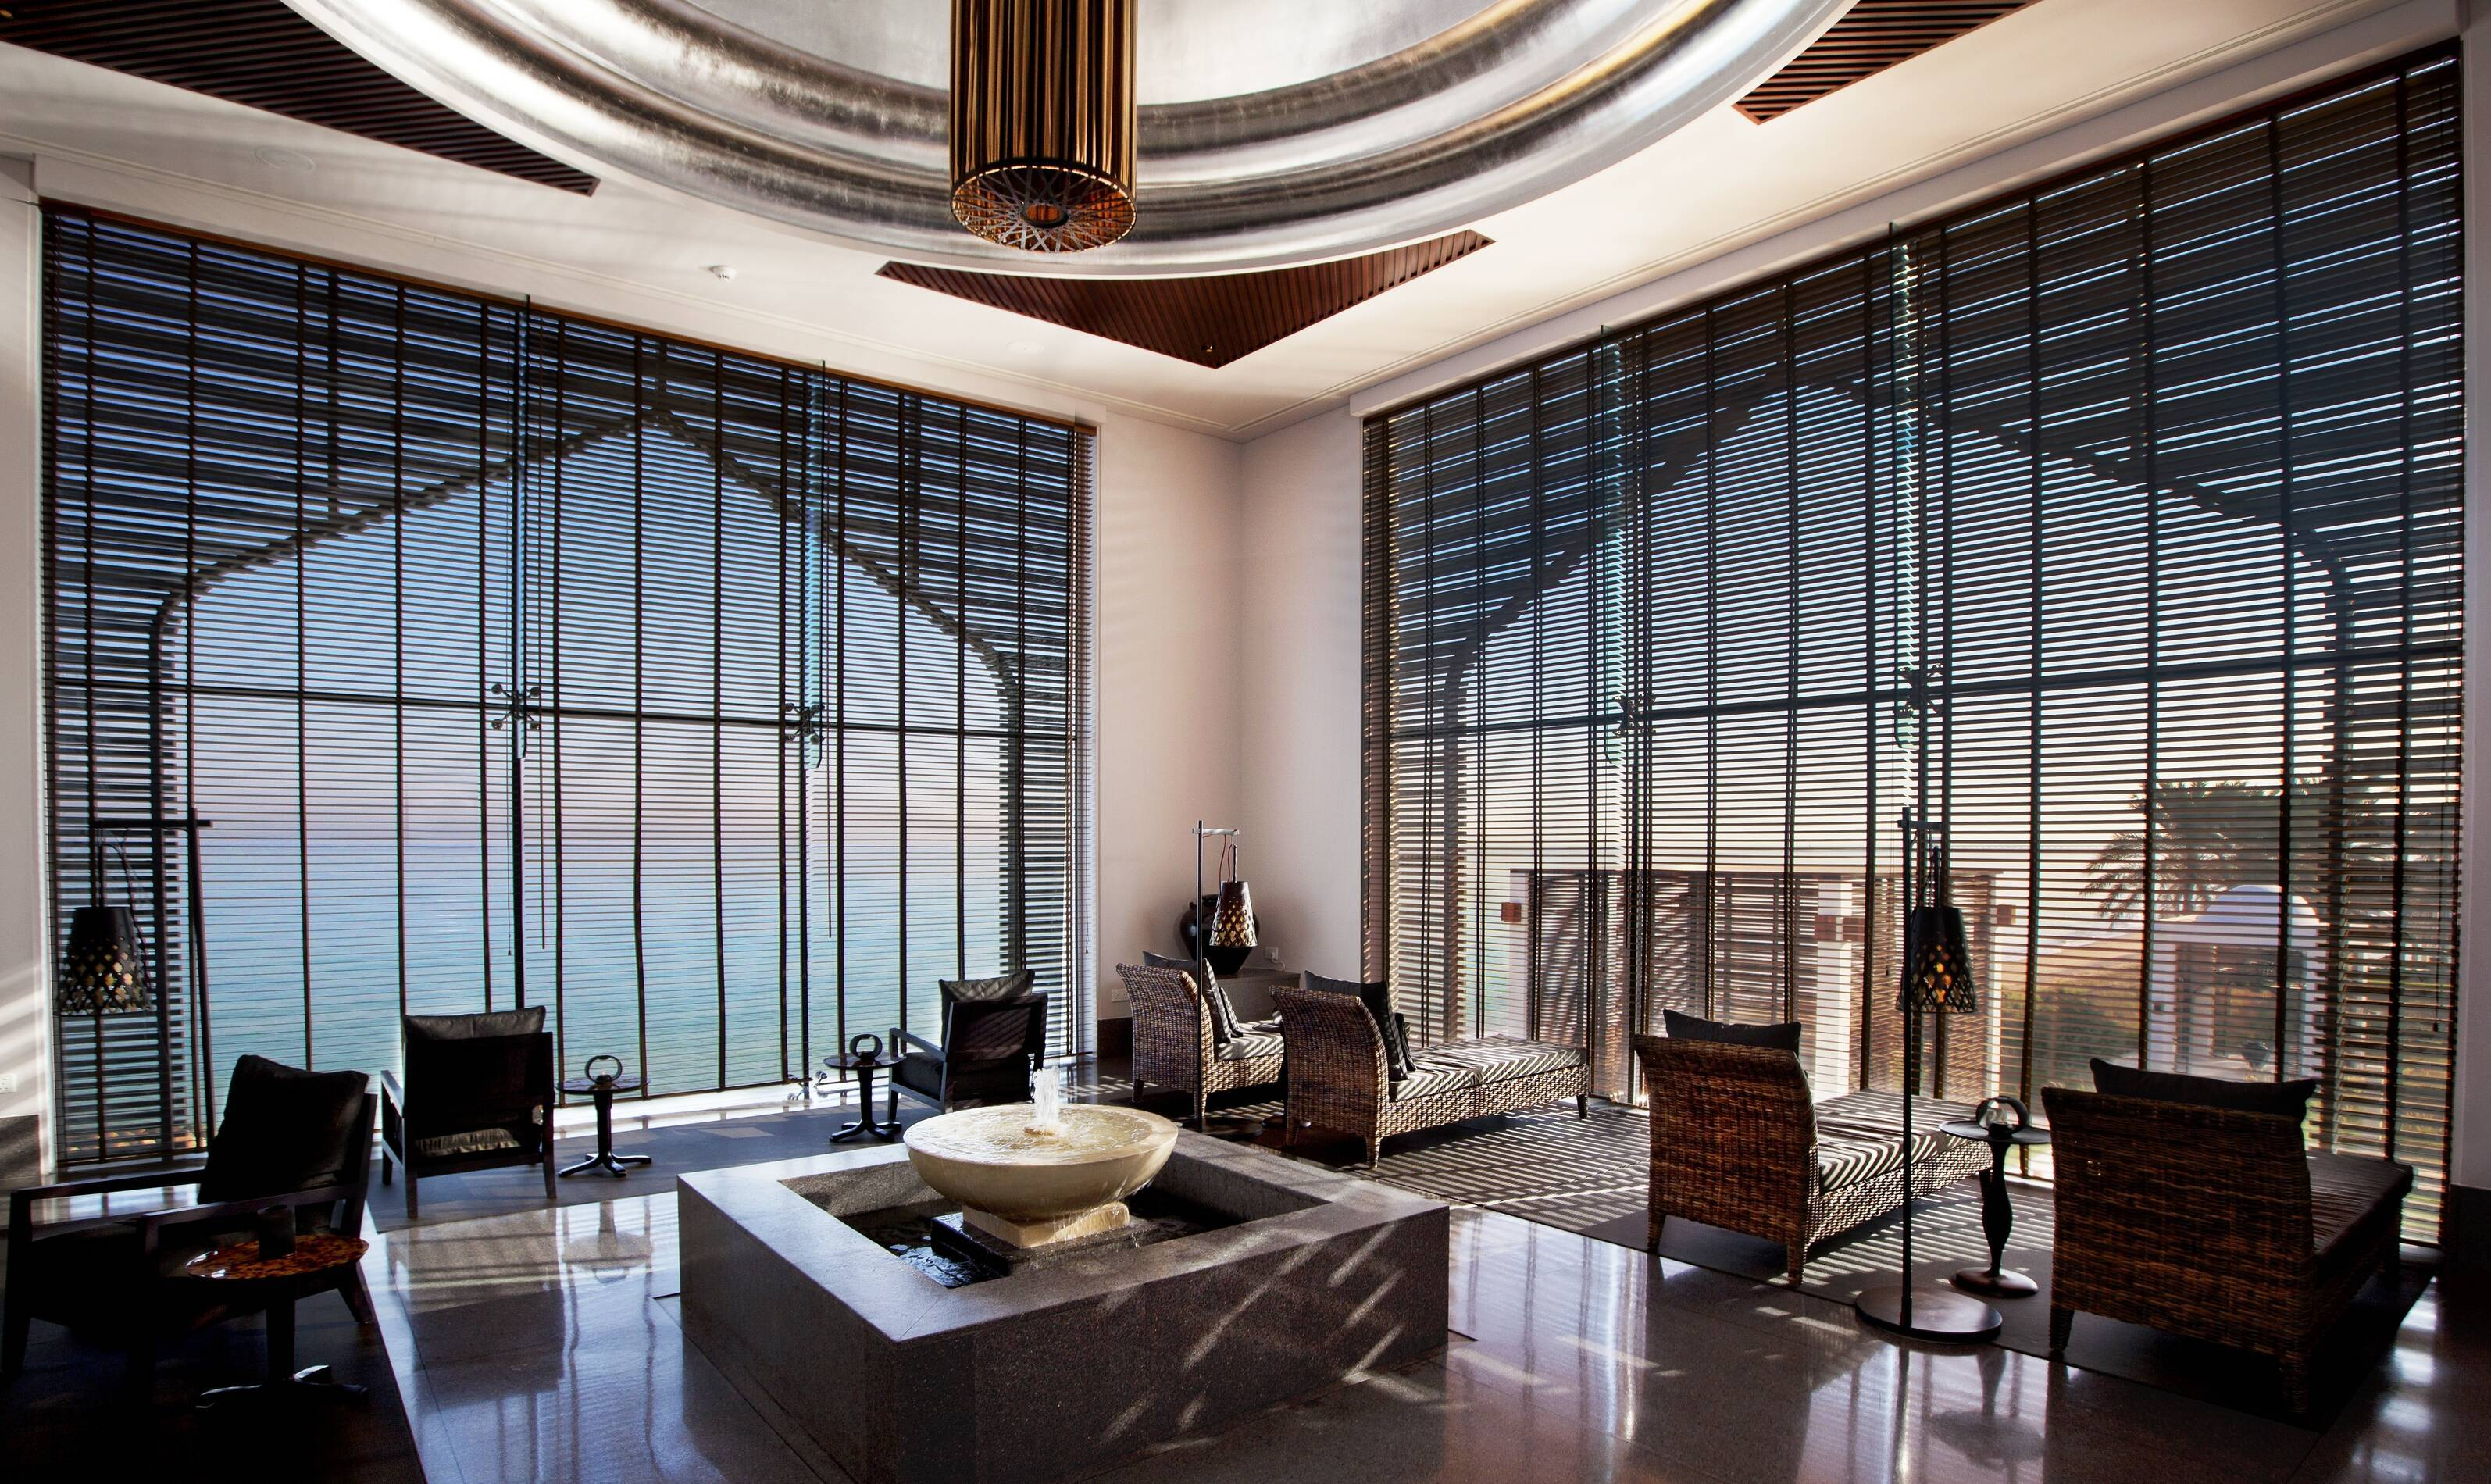 Chedi Muscat Oman Salon Spa